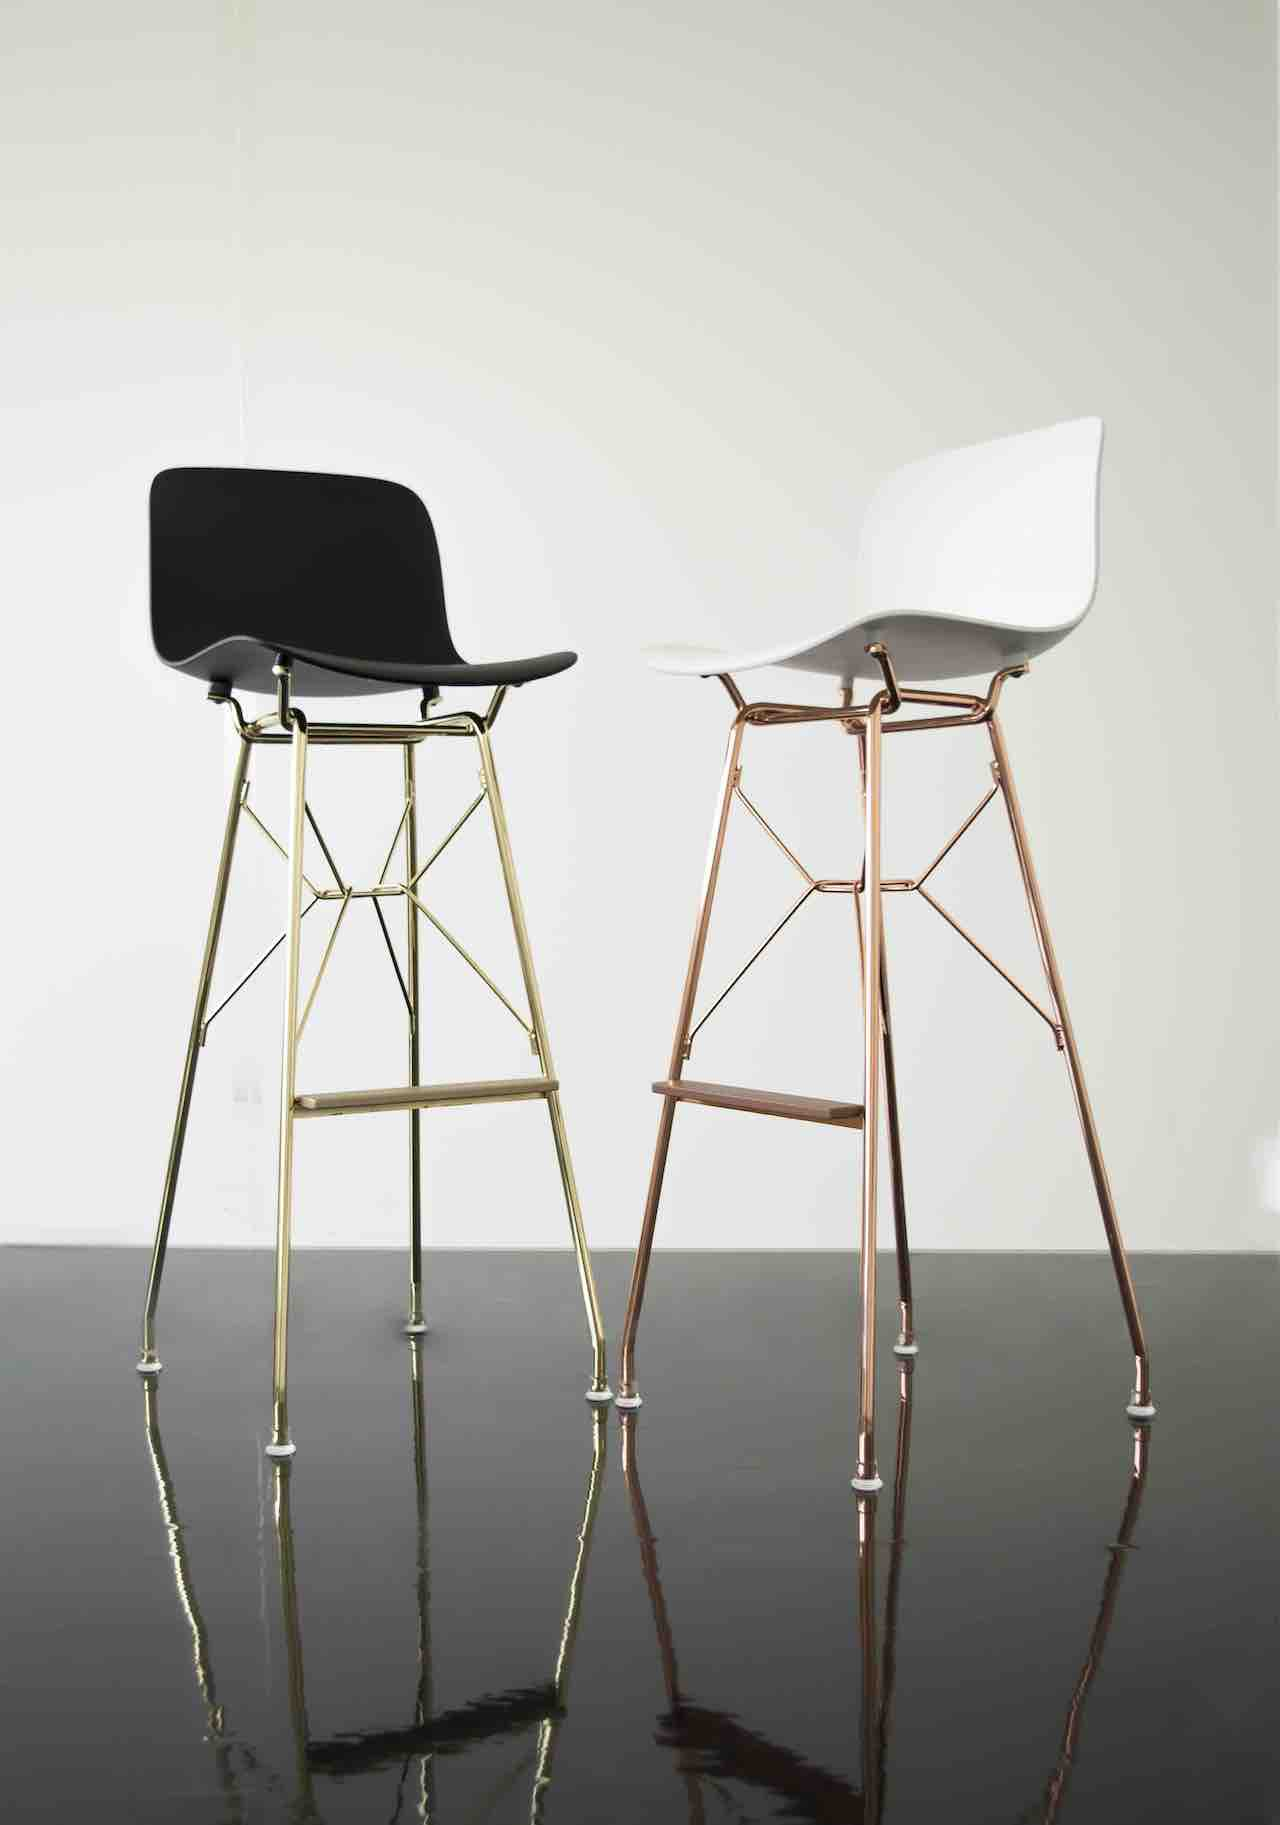 The Troy stool in the version with the golden or copper frame